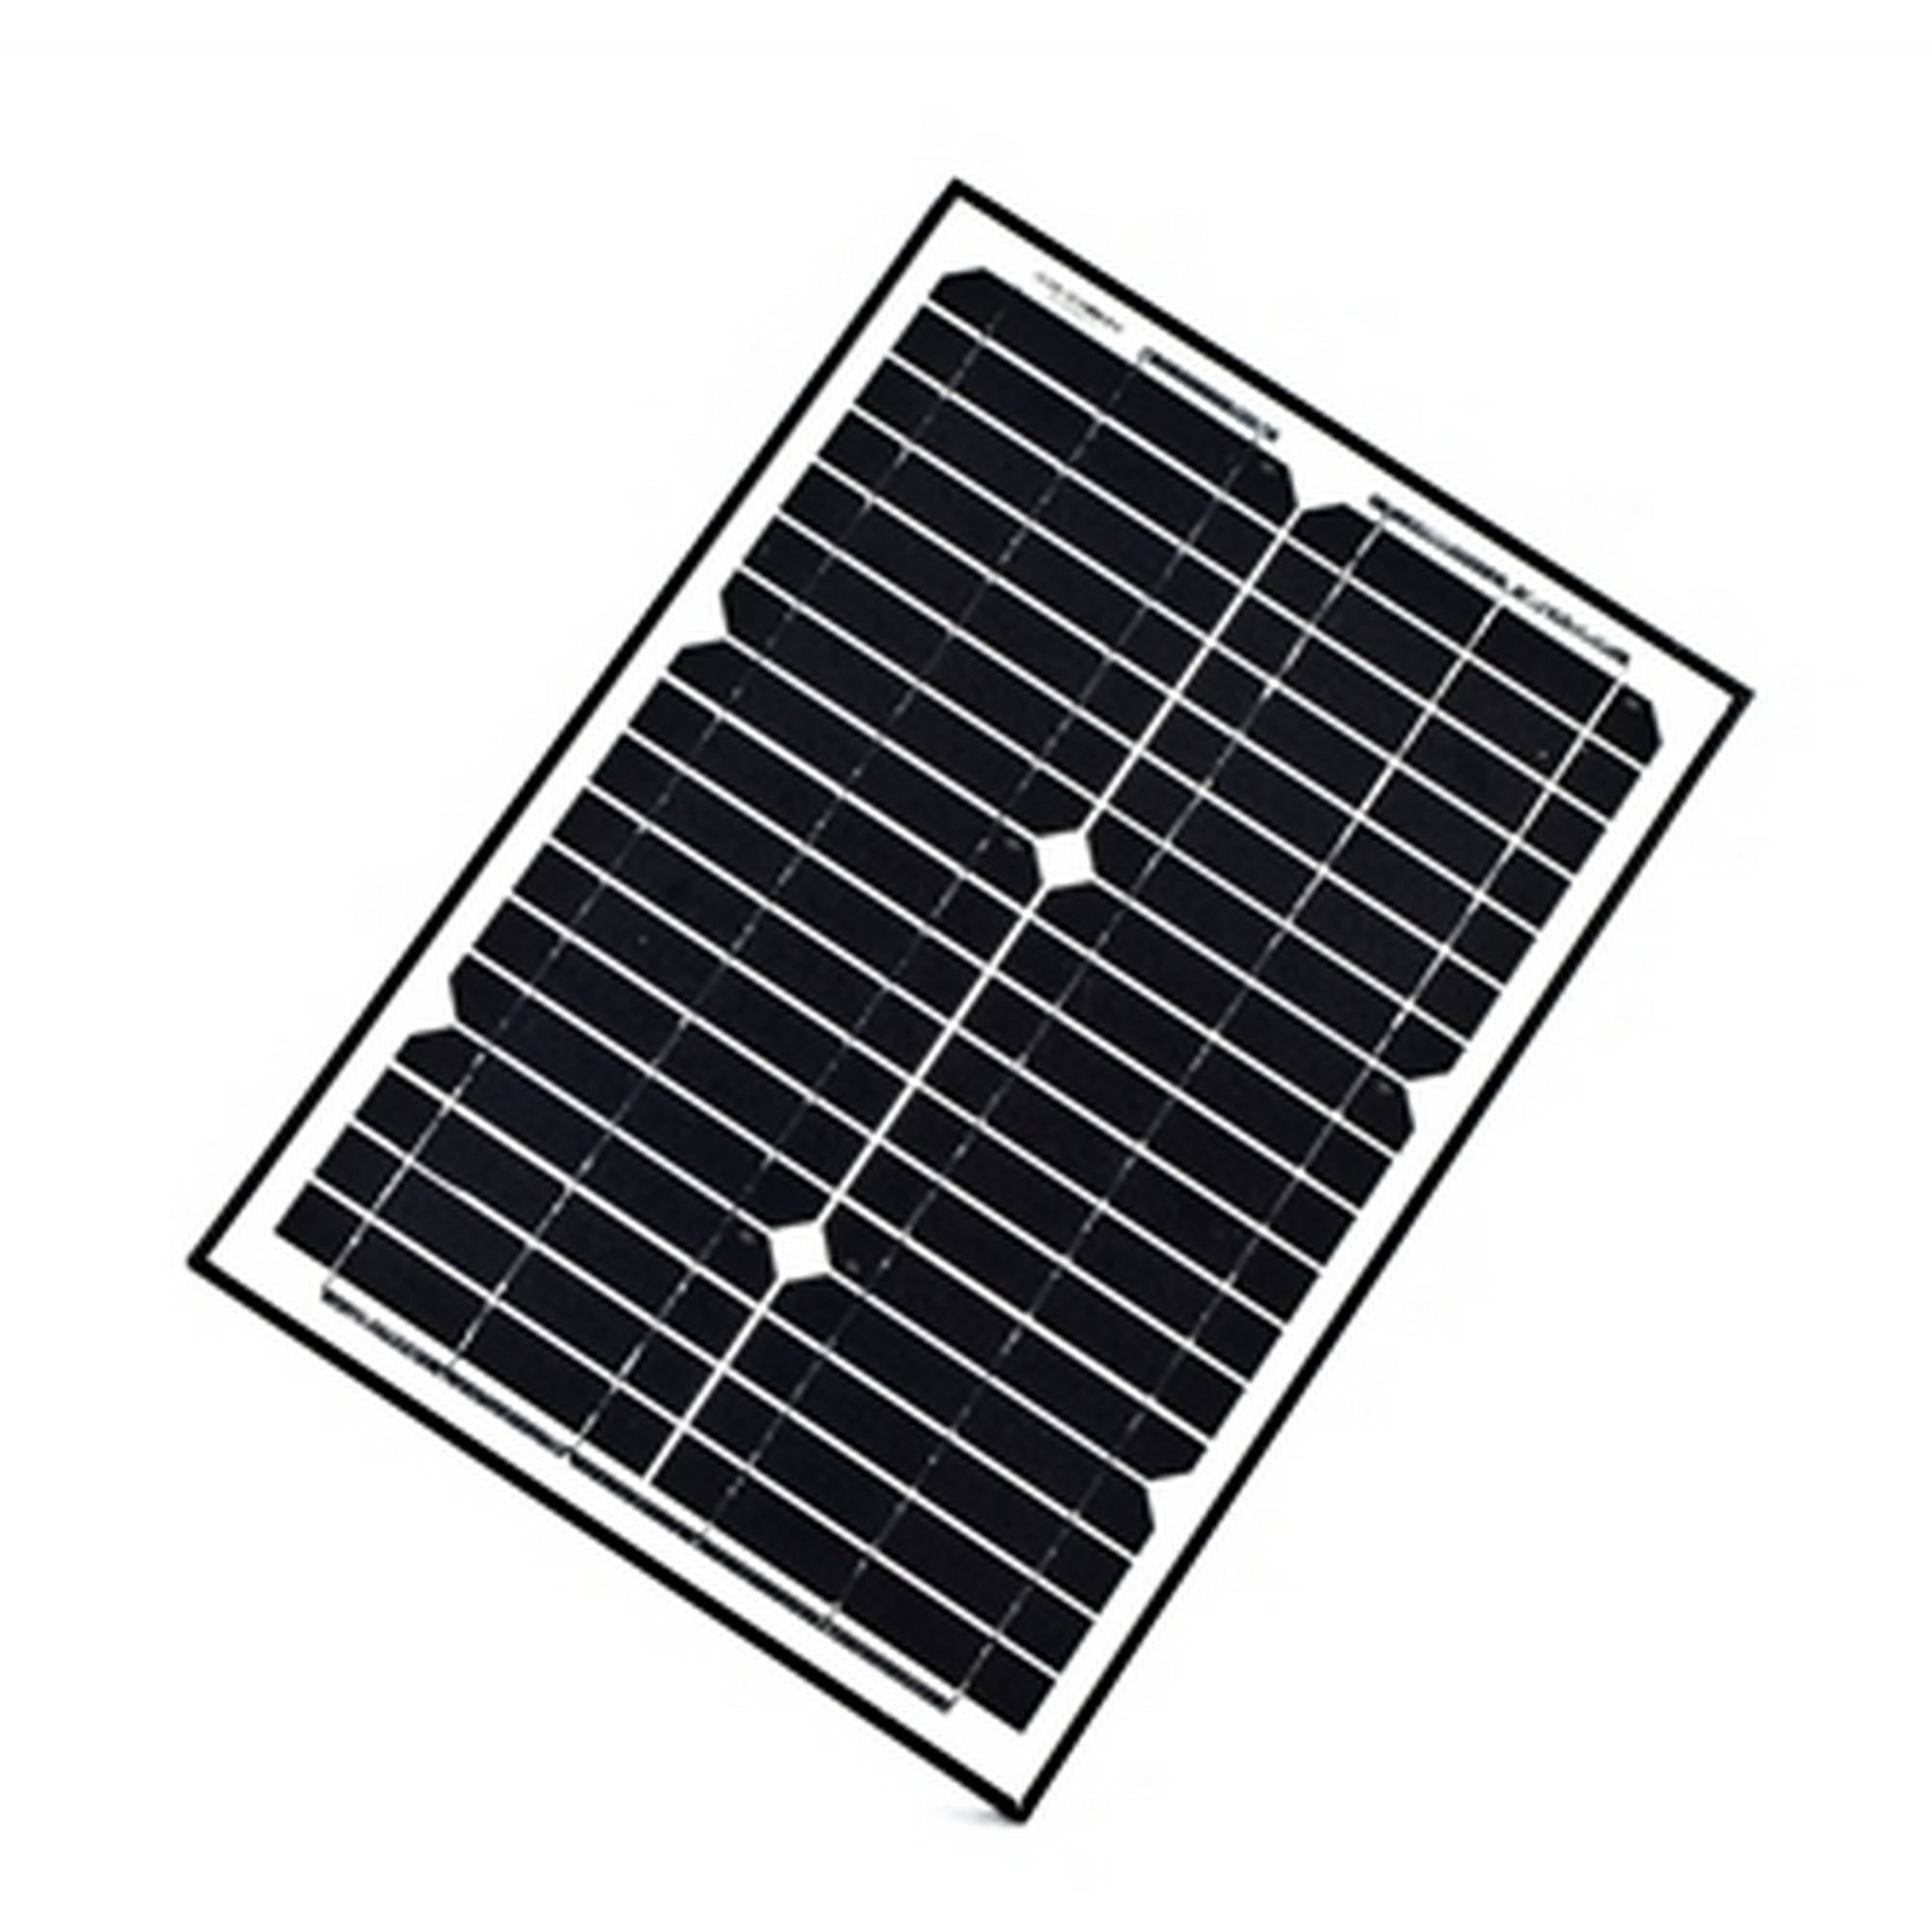 ALEKO Solar Panel Monocrystalline 20W for any DC 12V Application